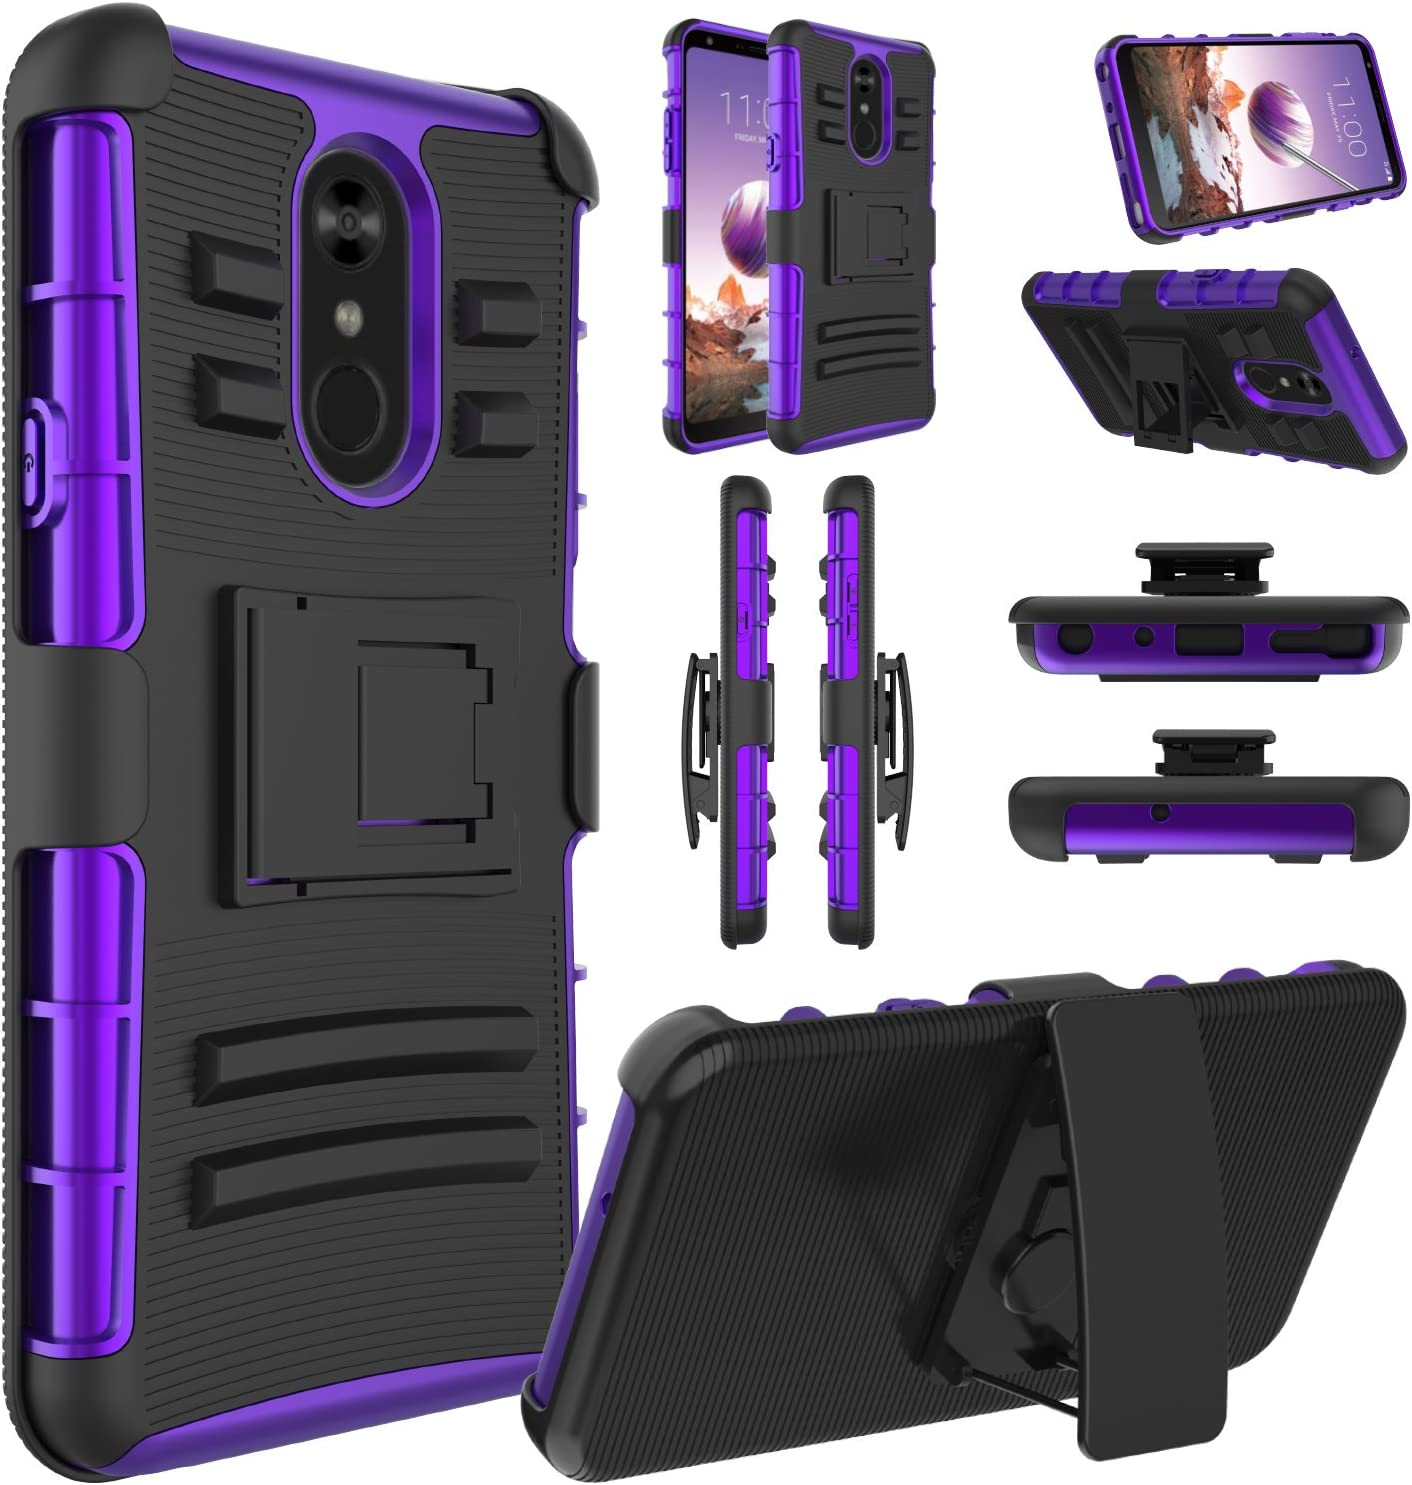 LG Stylo 4 Case, LG Stylo 4 Phone Case, LG Stylo 4 Plus, LG Q Stylus, Elegant Choise Hybrid Holster Heavy Duty Shockproof Full Body Protective Case with Kickstand and Belt Clip for LG Stylo 4 (Purple)